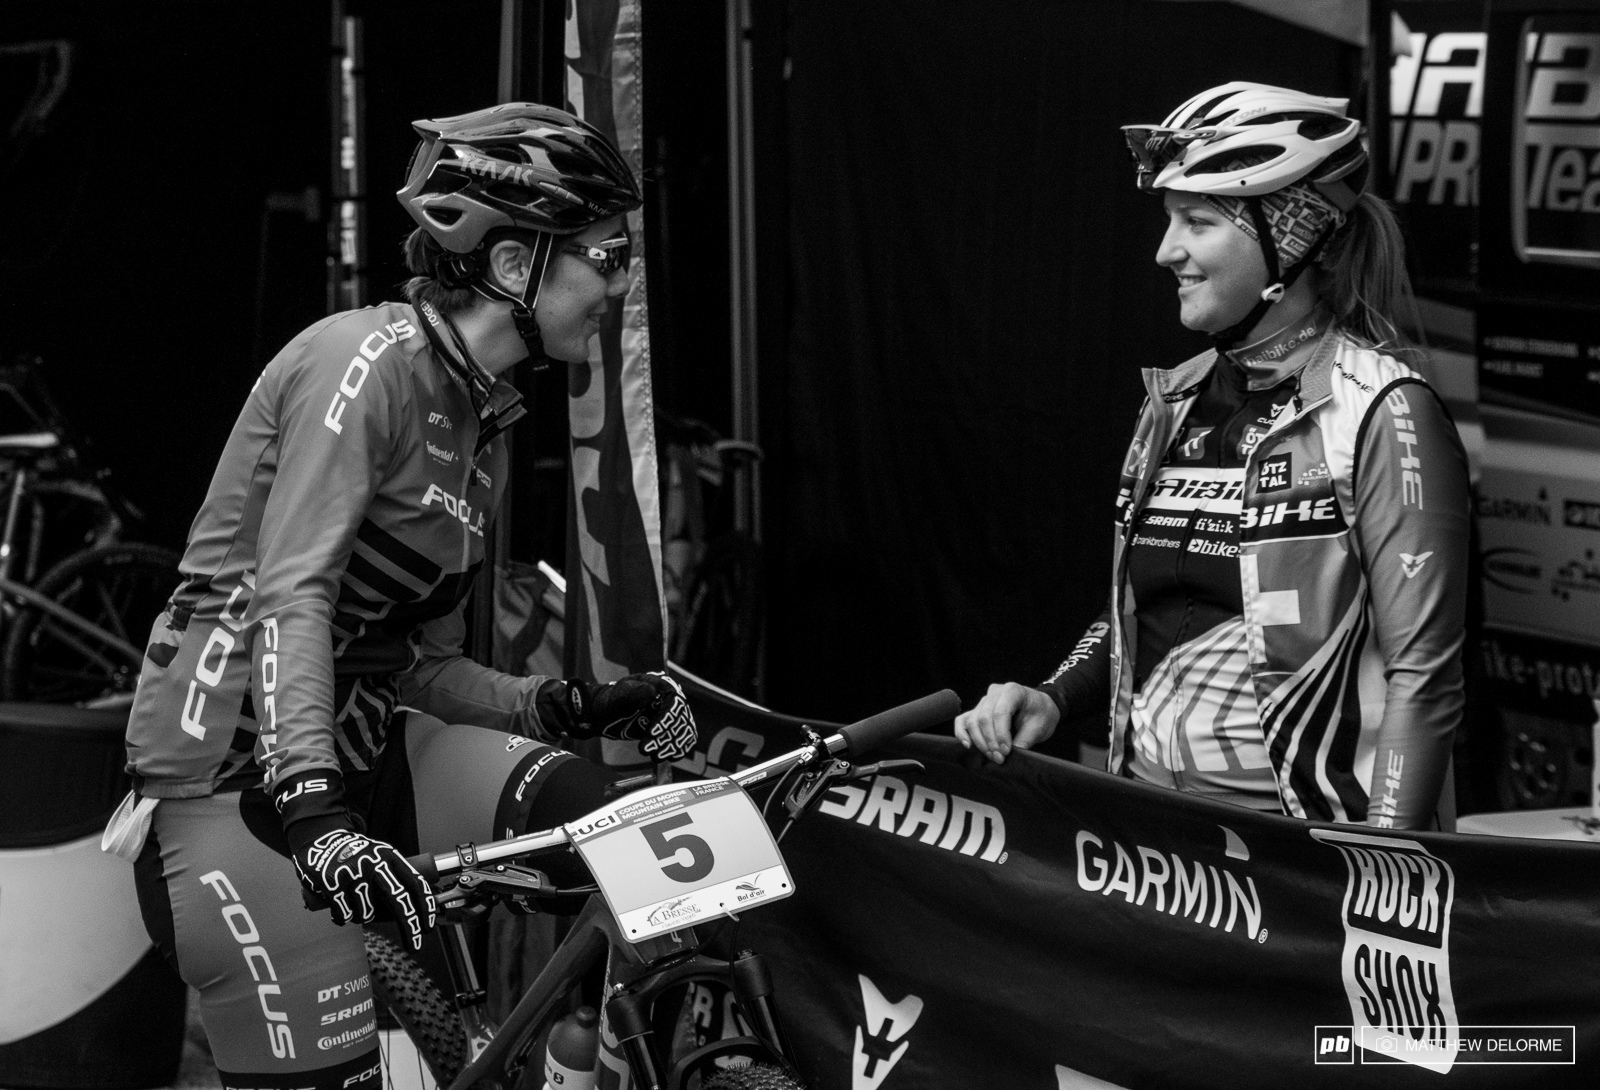 Linda Indergand and Kathrin Sternimann have a laugh before racing gets underway.